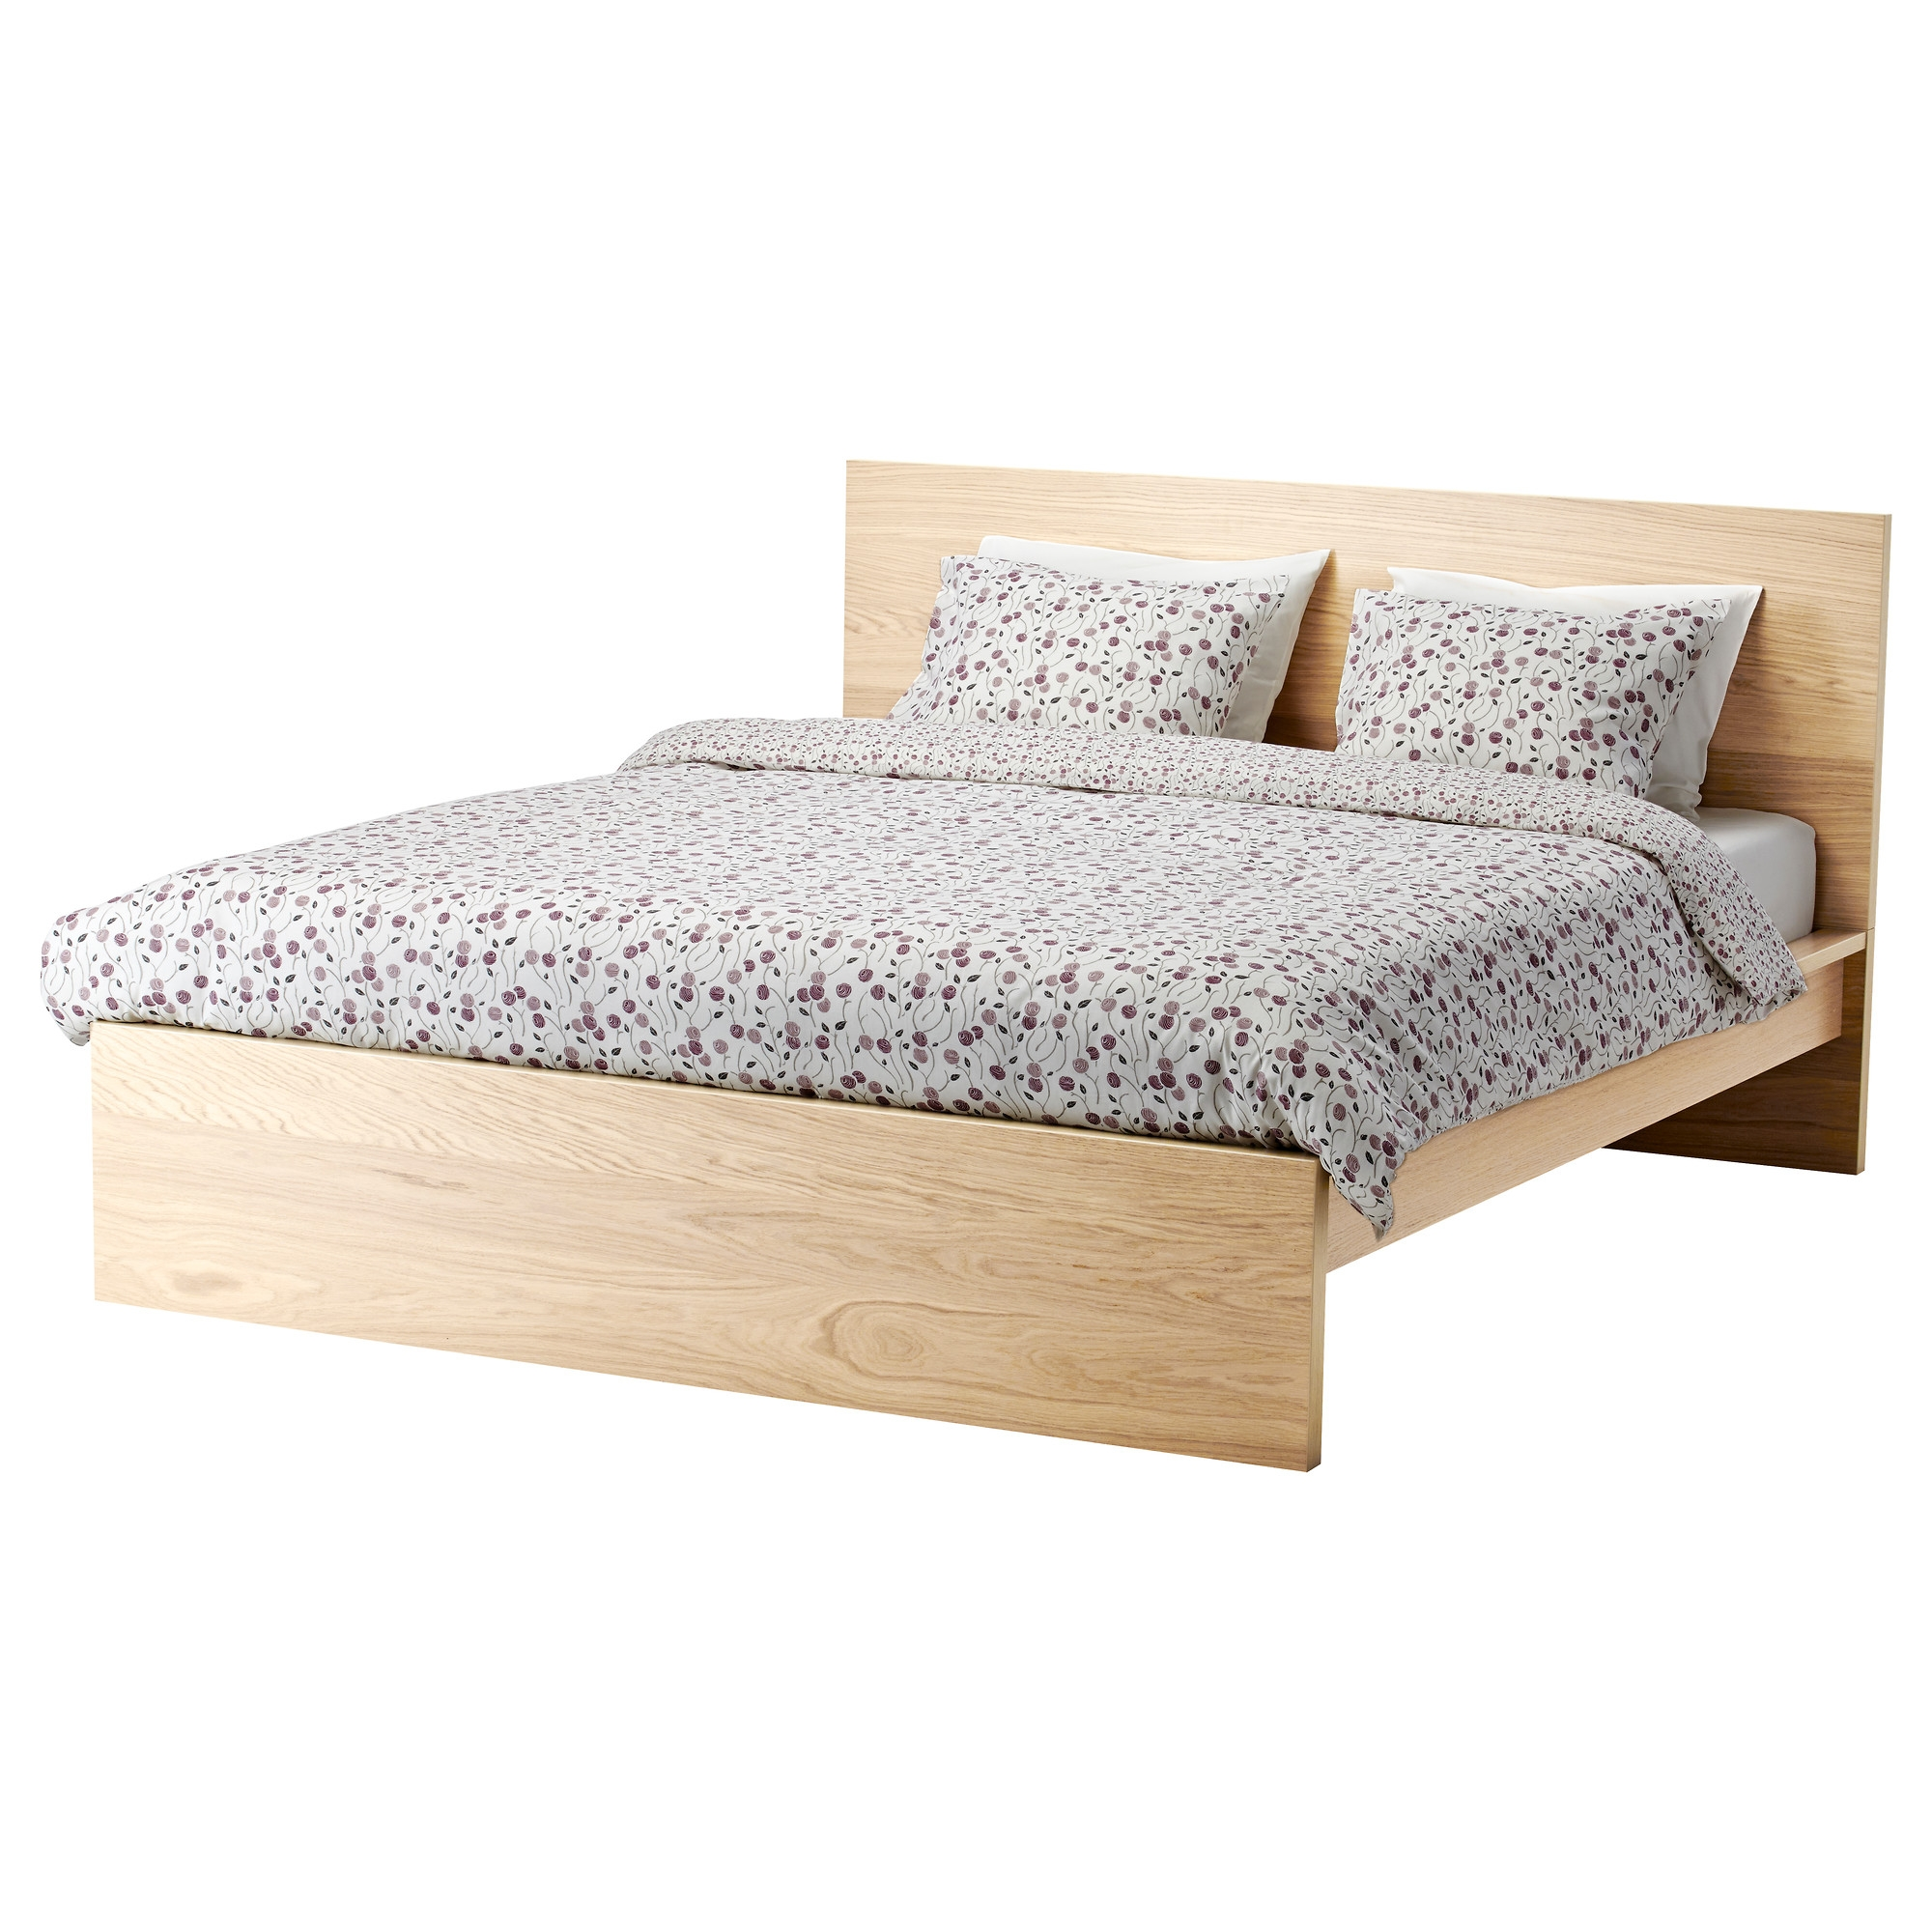 MALM Armz cama King + viga central